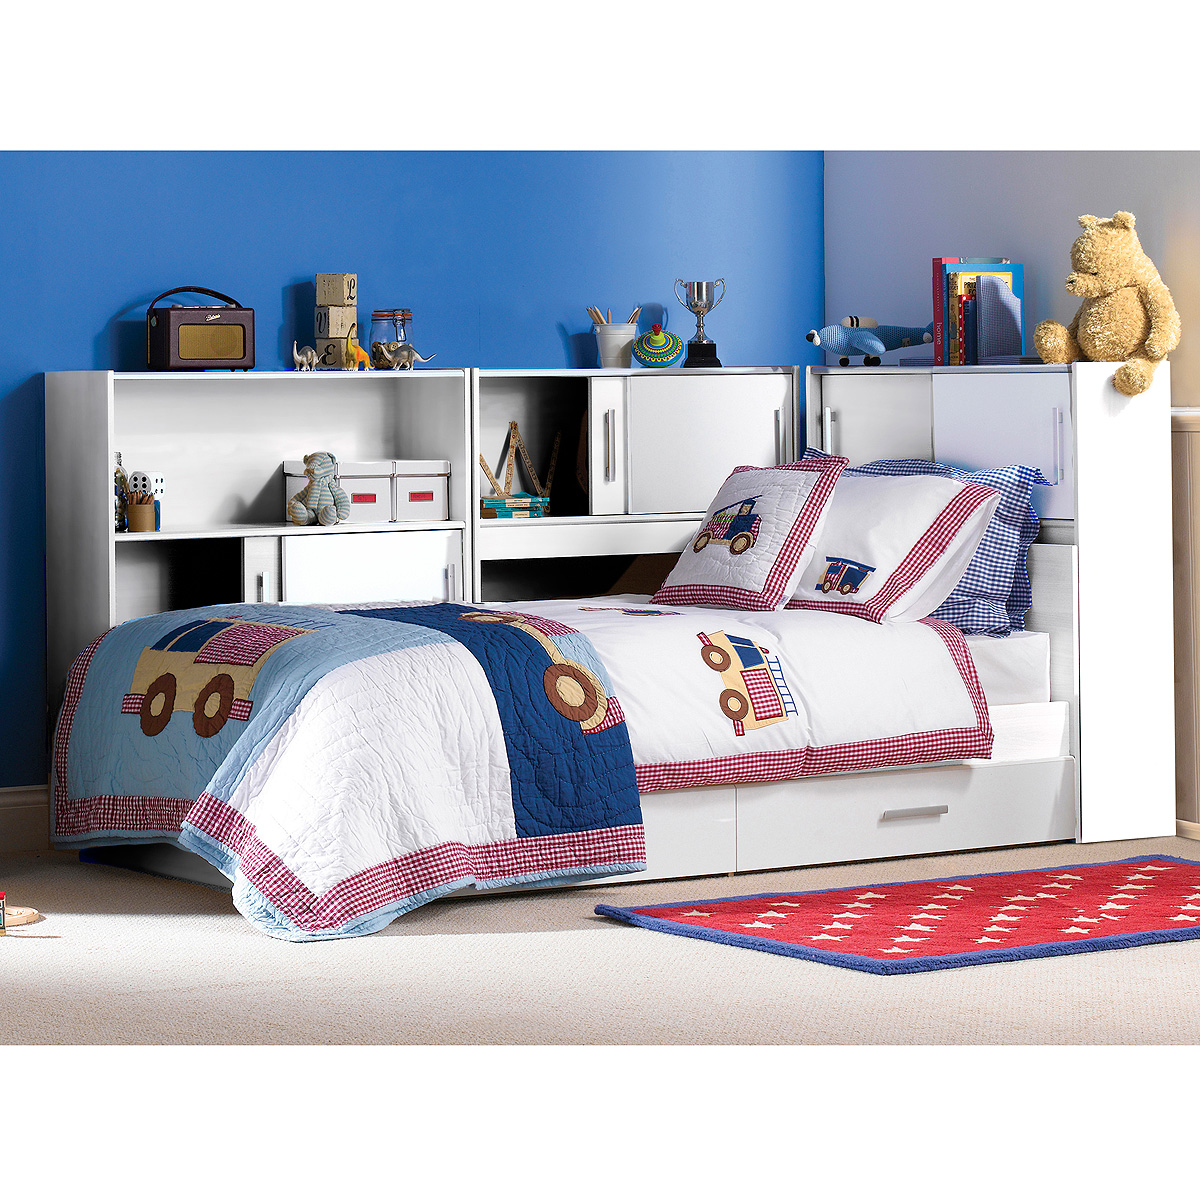 jugendbett snoop stauraumbett bett kinderbett in wei. Black Bedroom Furniture Sets. Home Design Ideas